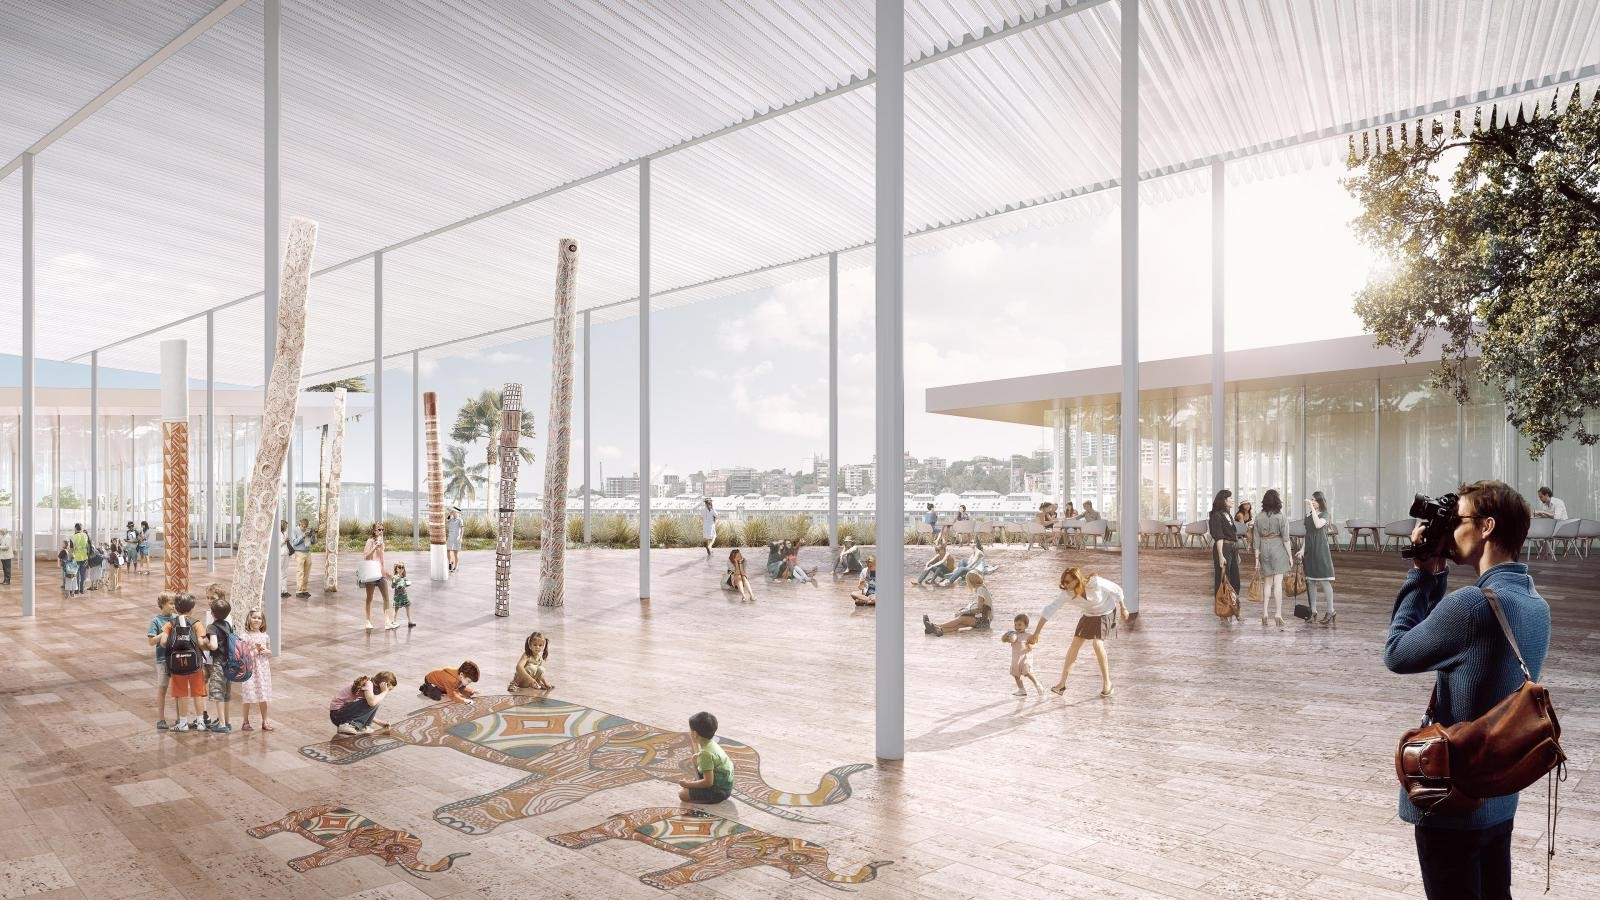 New Images For Art Gallery Of South Wales Expansion In Sydney revealed by SANAA - Sheet10